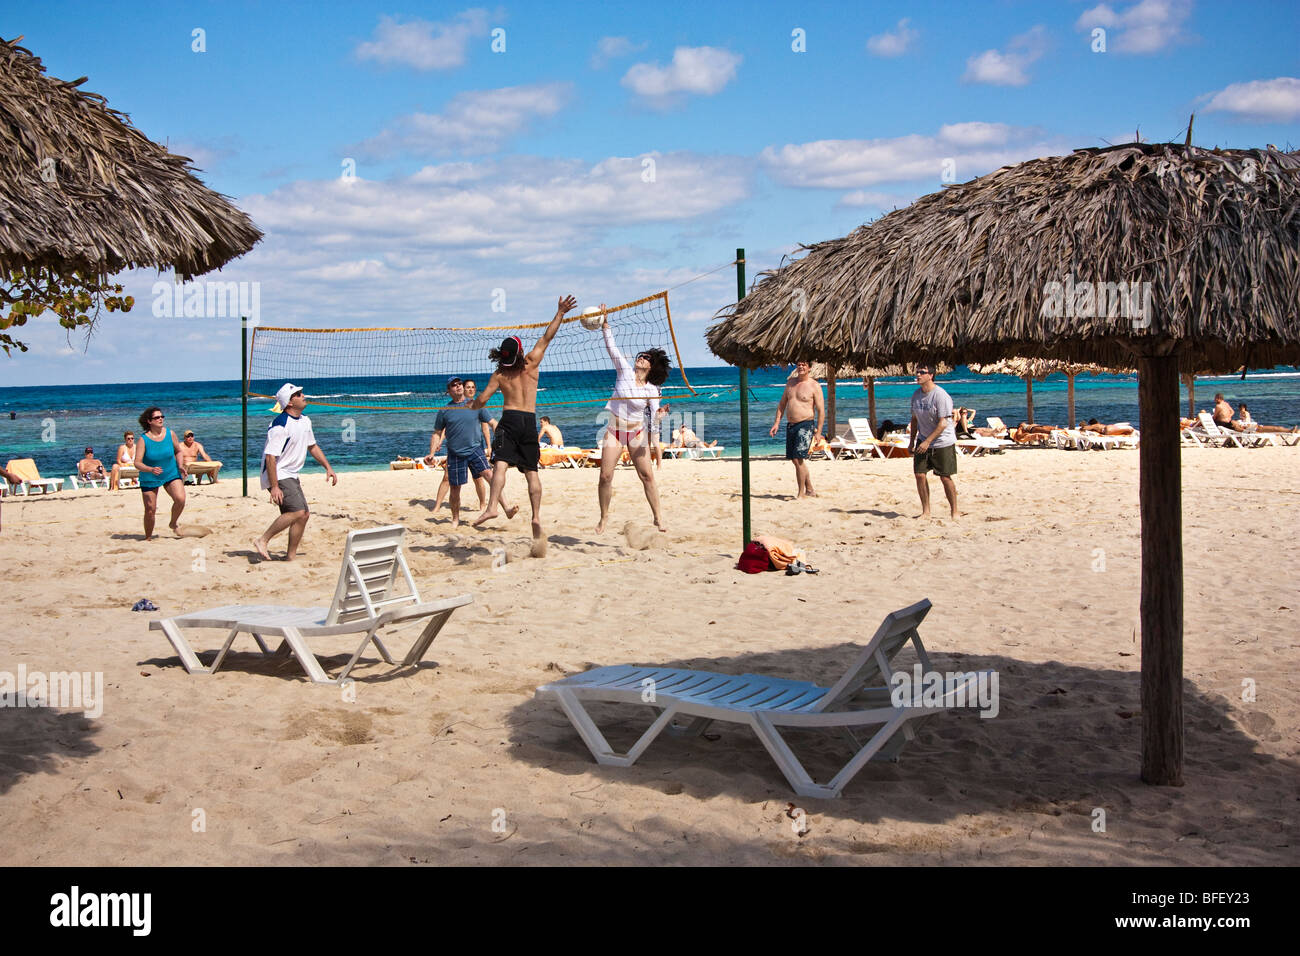 People playing beach volleyball, Caribbean, Cuban resort - Stock Image